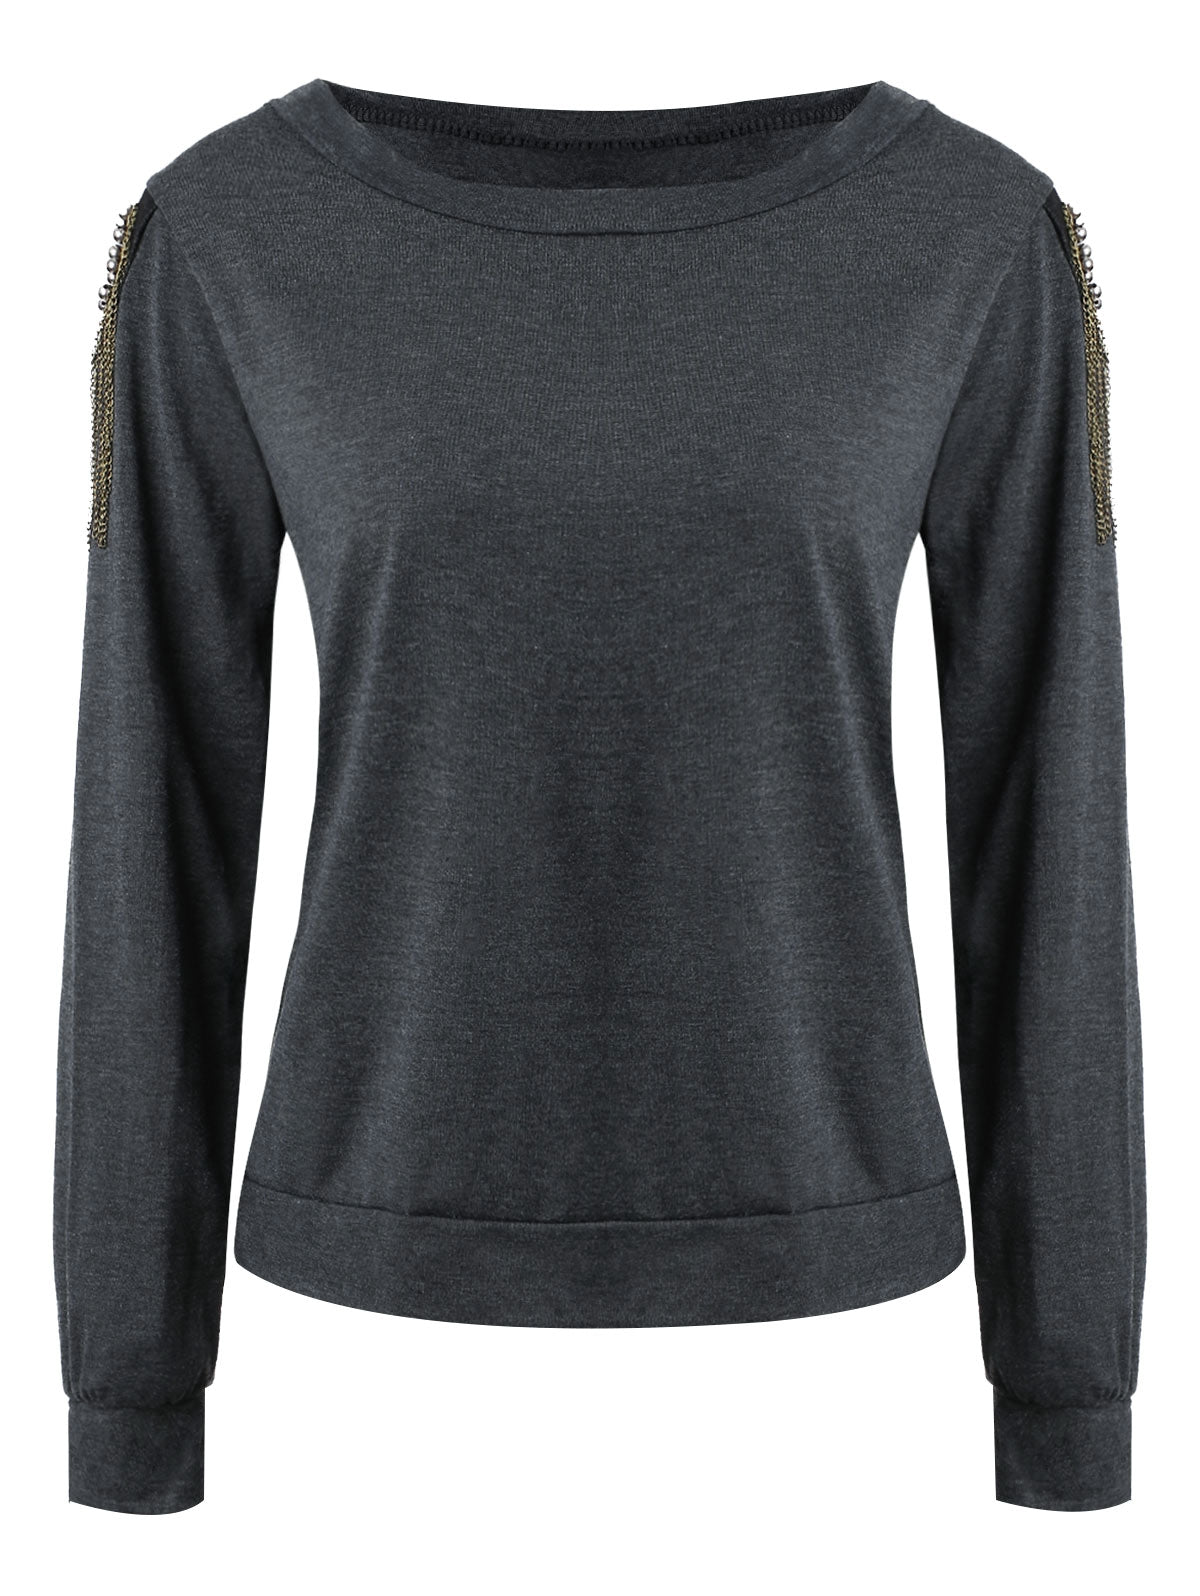 Alluring Women's Long Sleeve Jewel Neck Solid Color T-Shirt